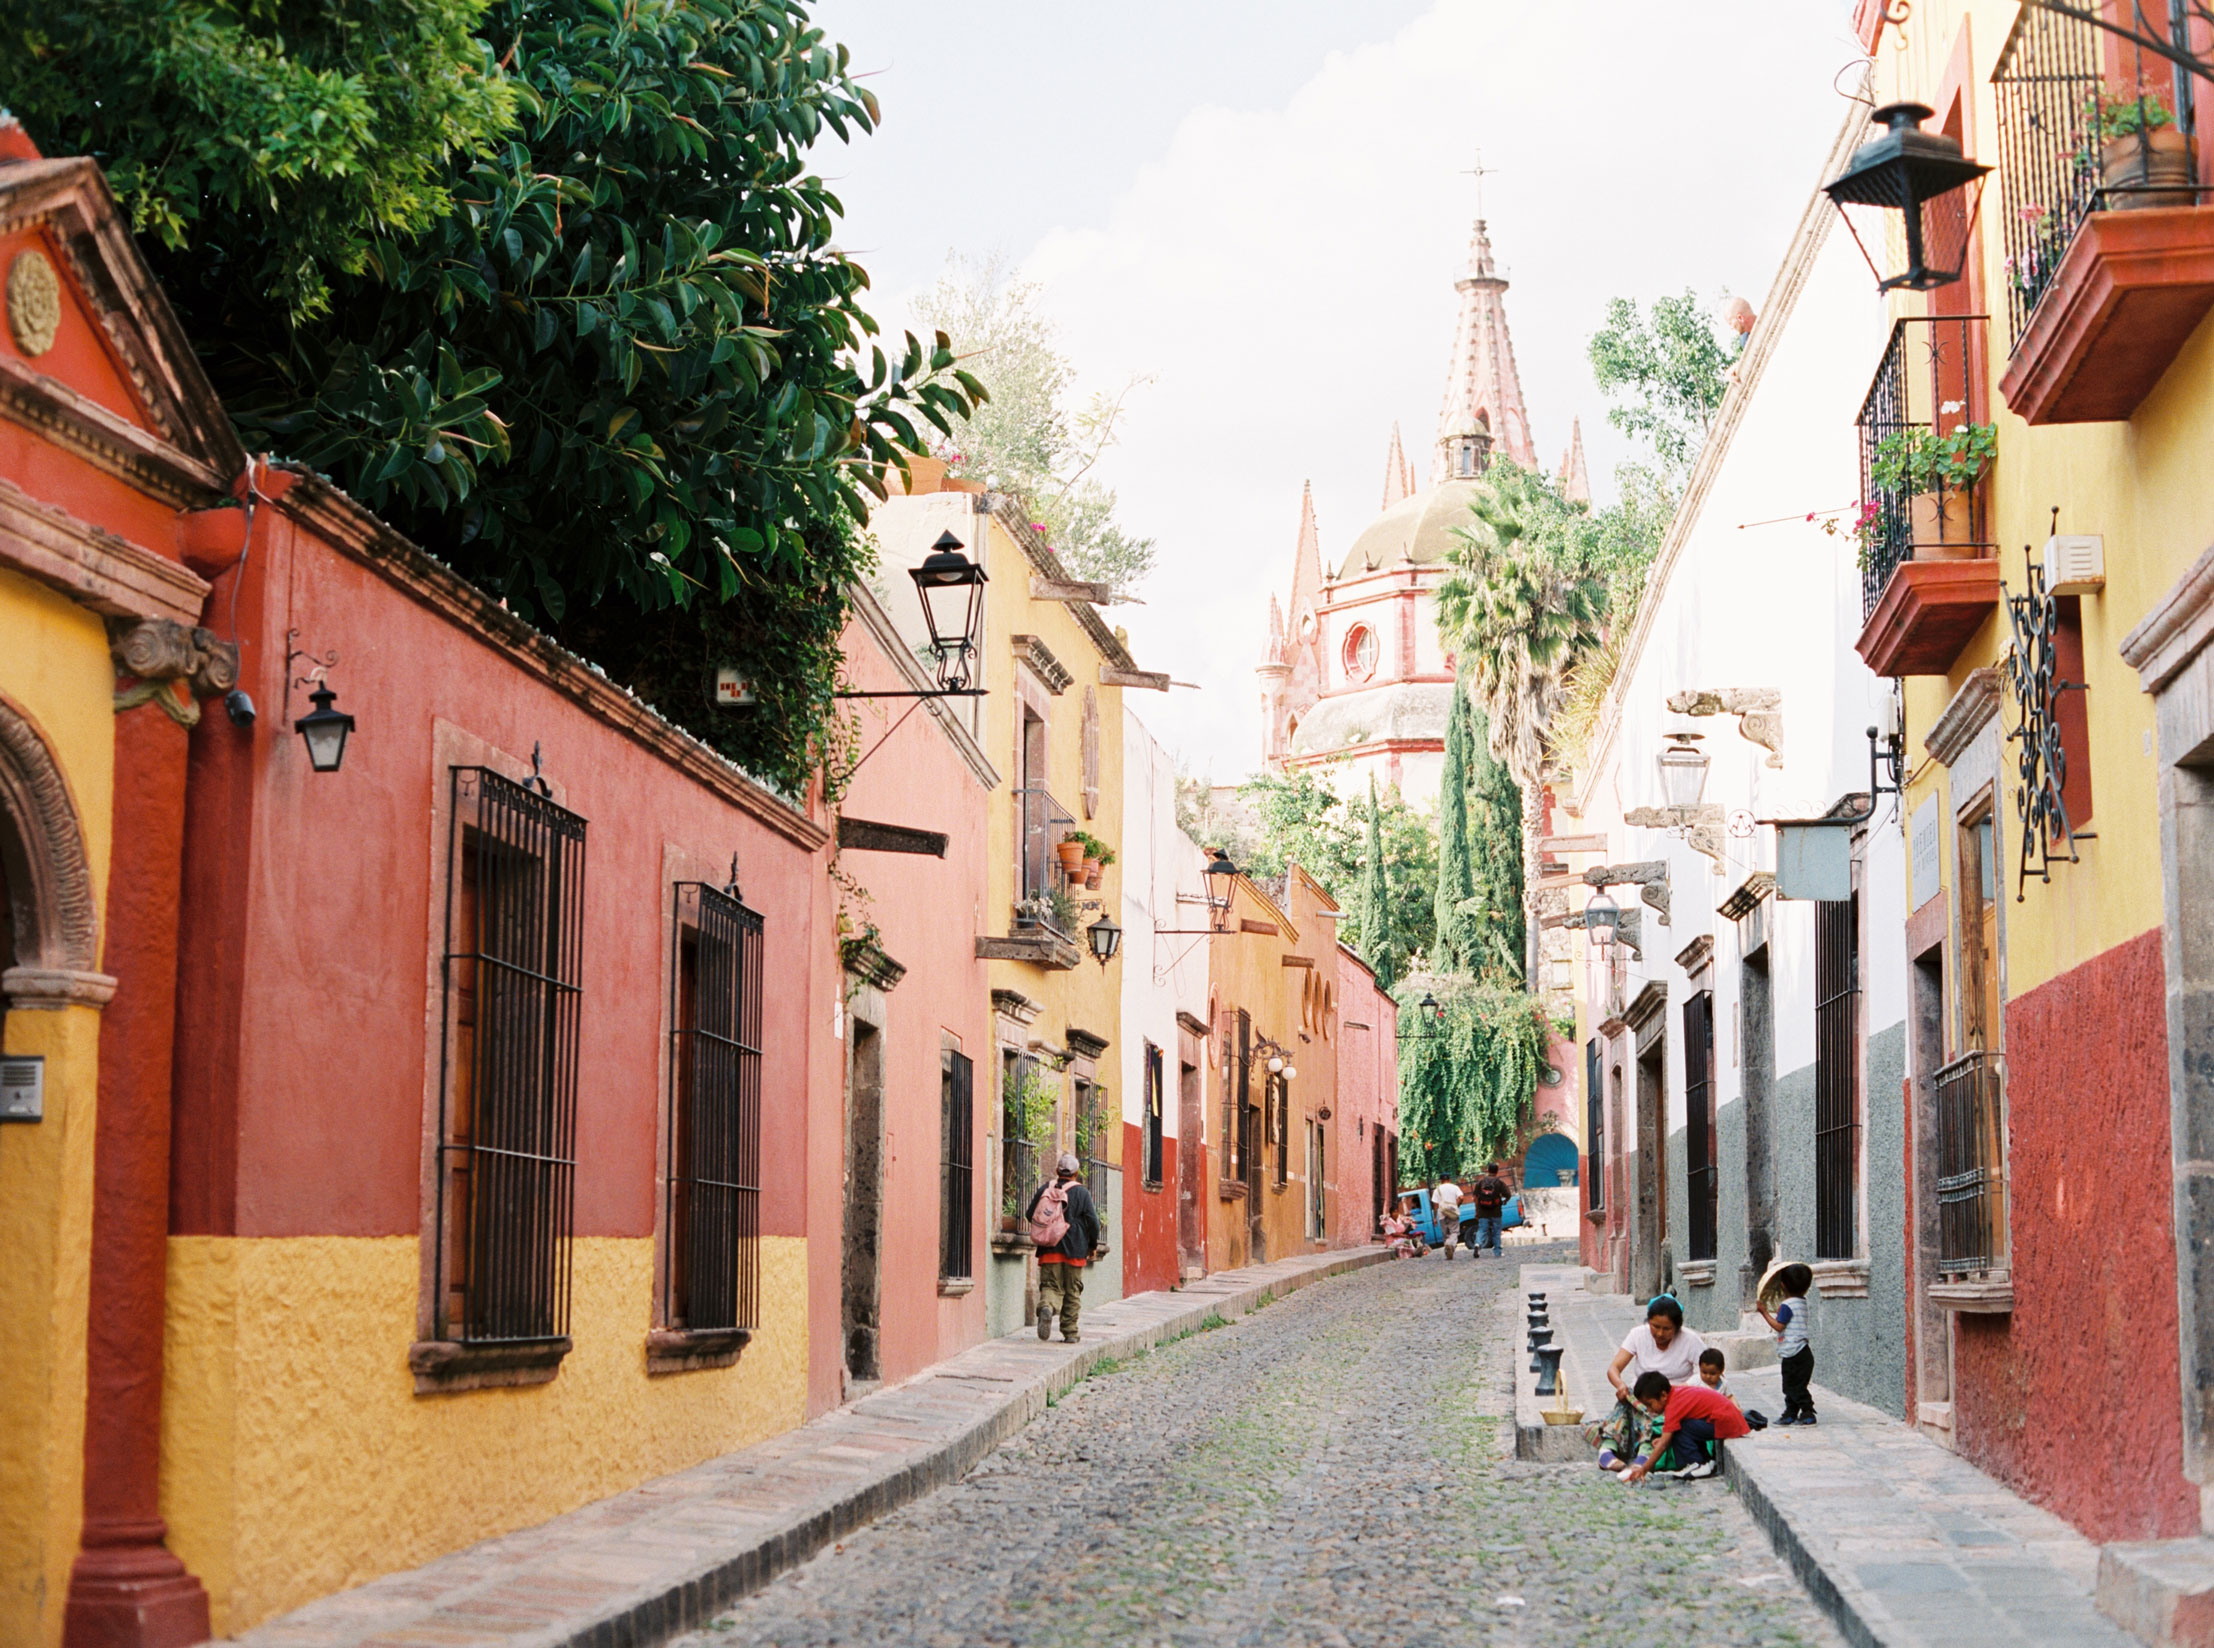 San Miguel de Allende colorful streets by Shannon Skloss Photography